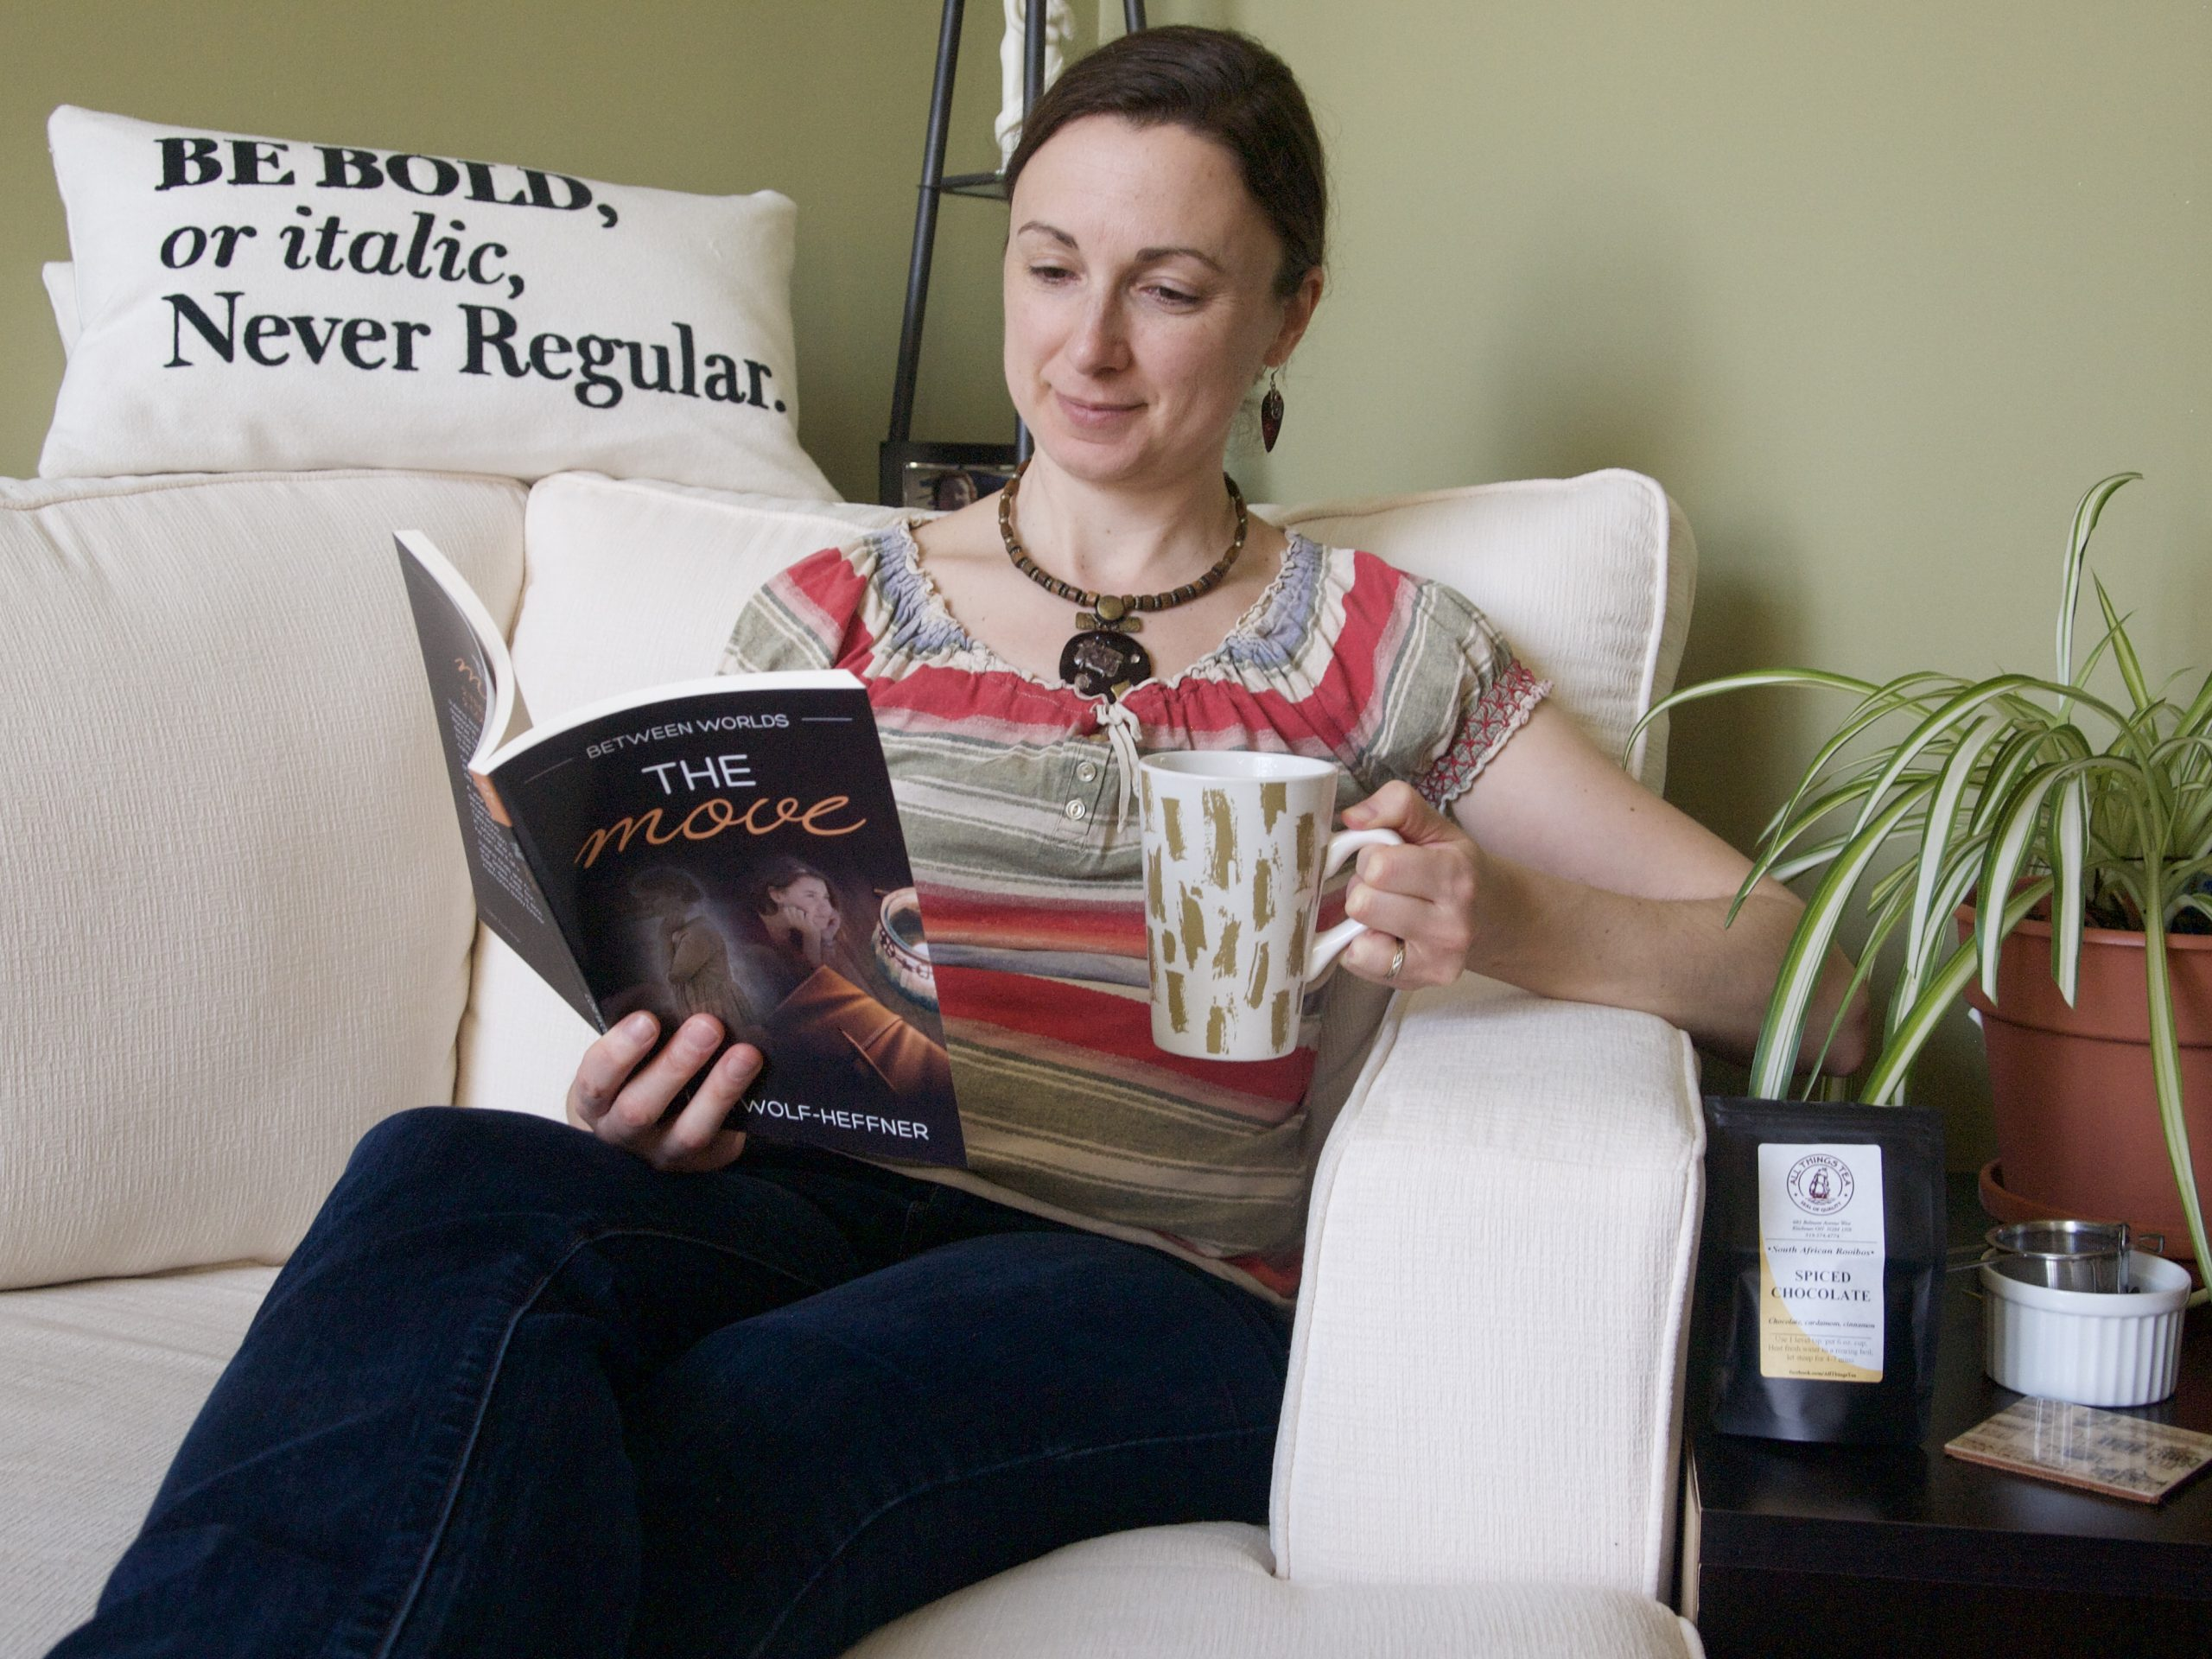 Lori Wolf-Heffner reading one of her books. Her series Between Worlds is free from explicit content.